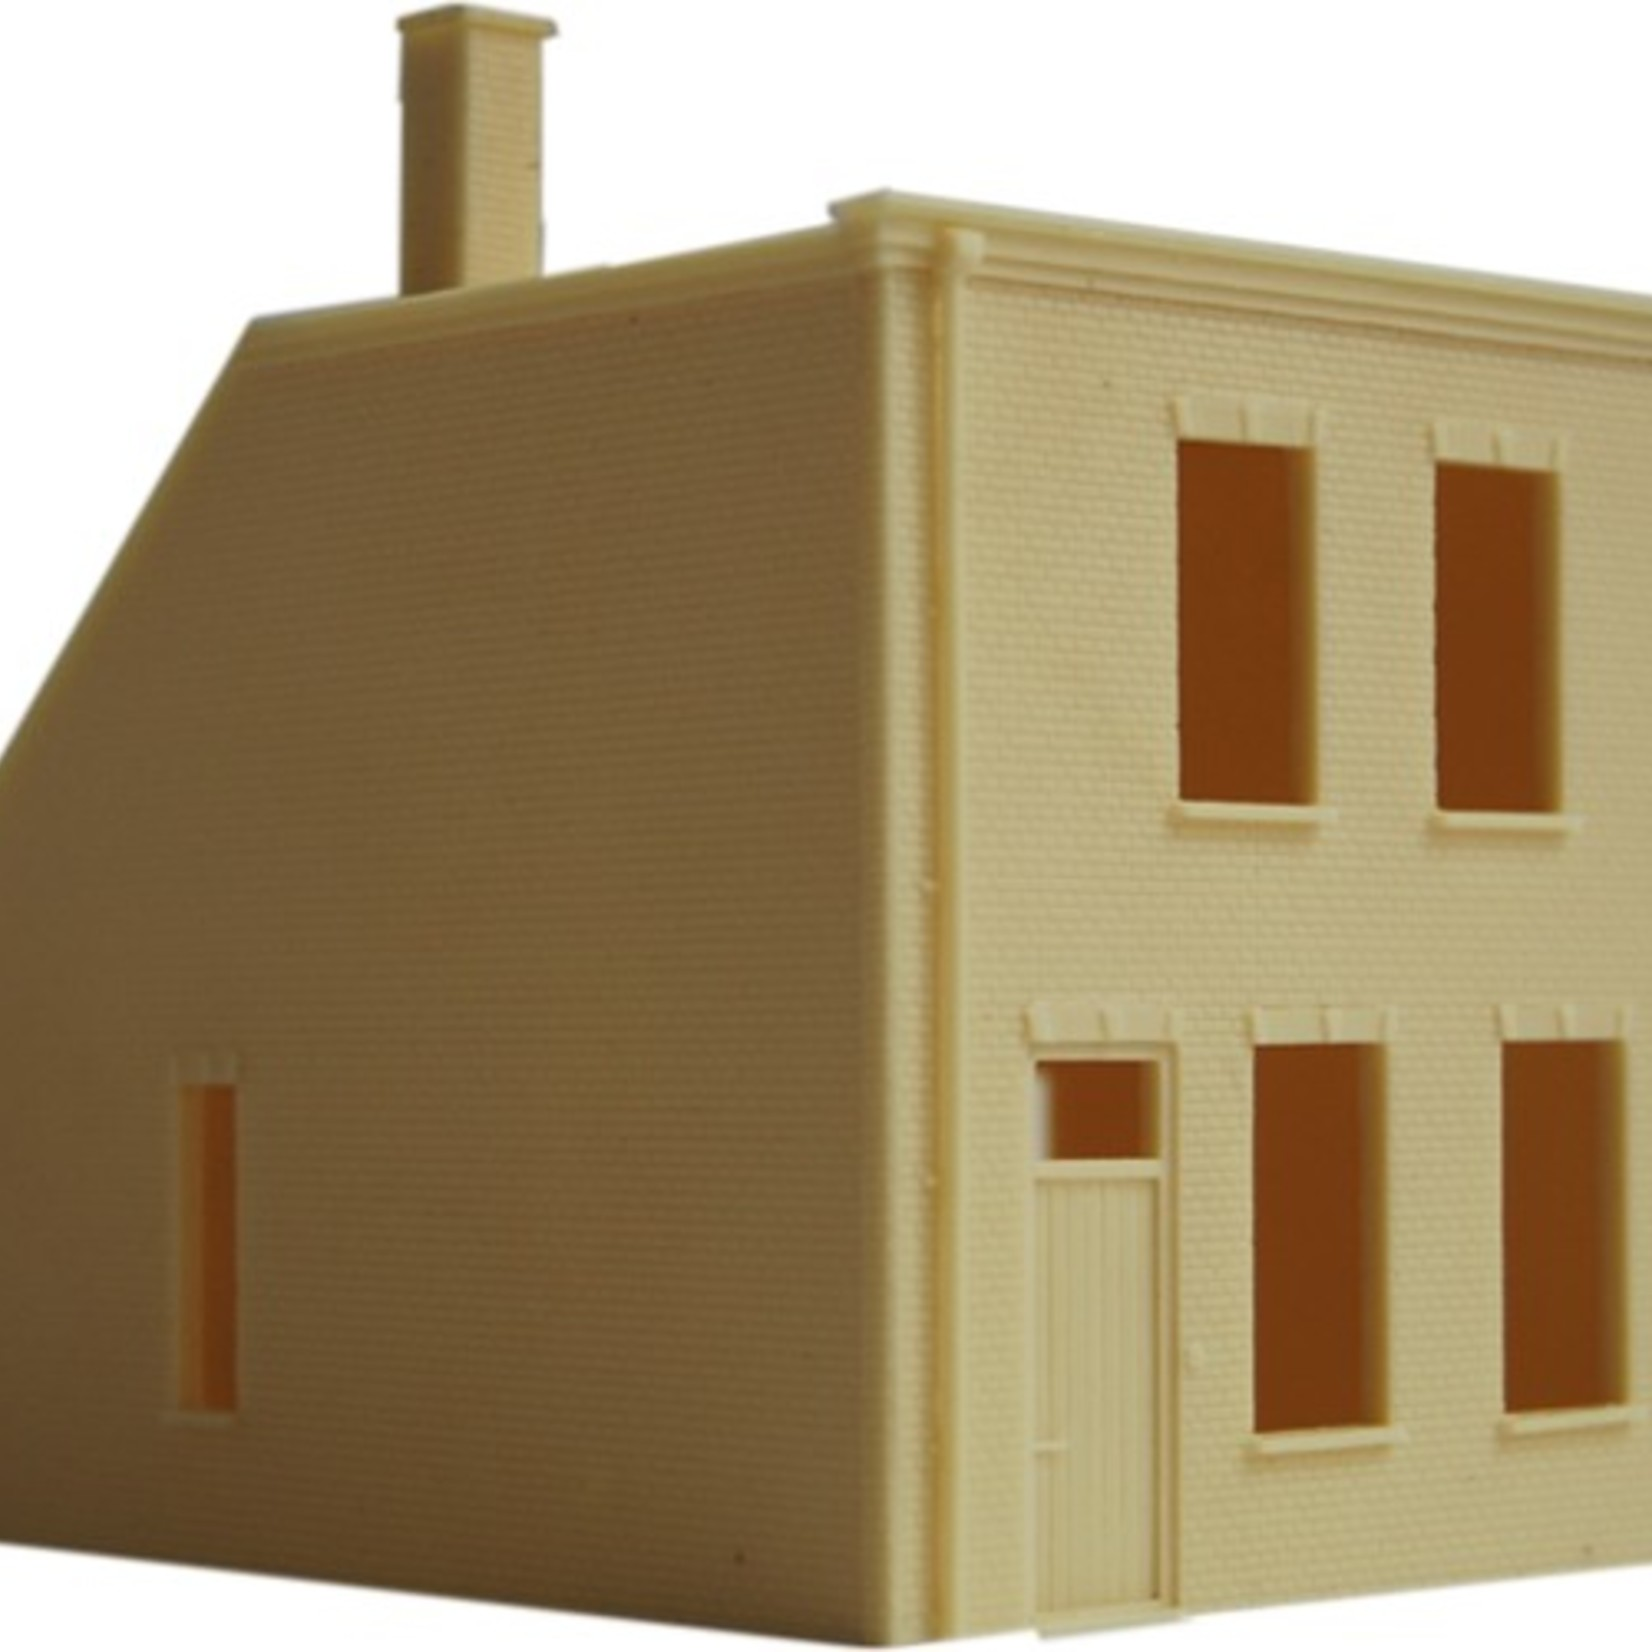 House with floor